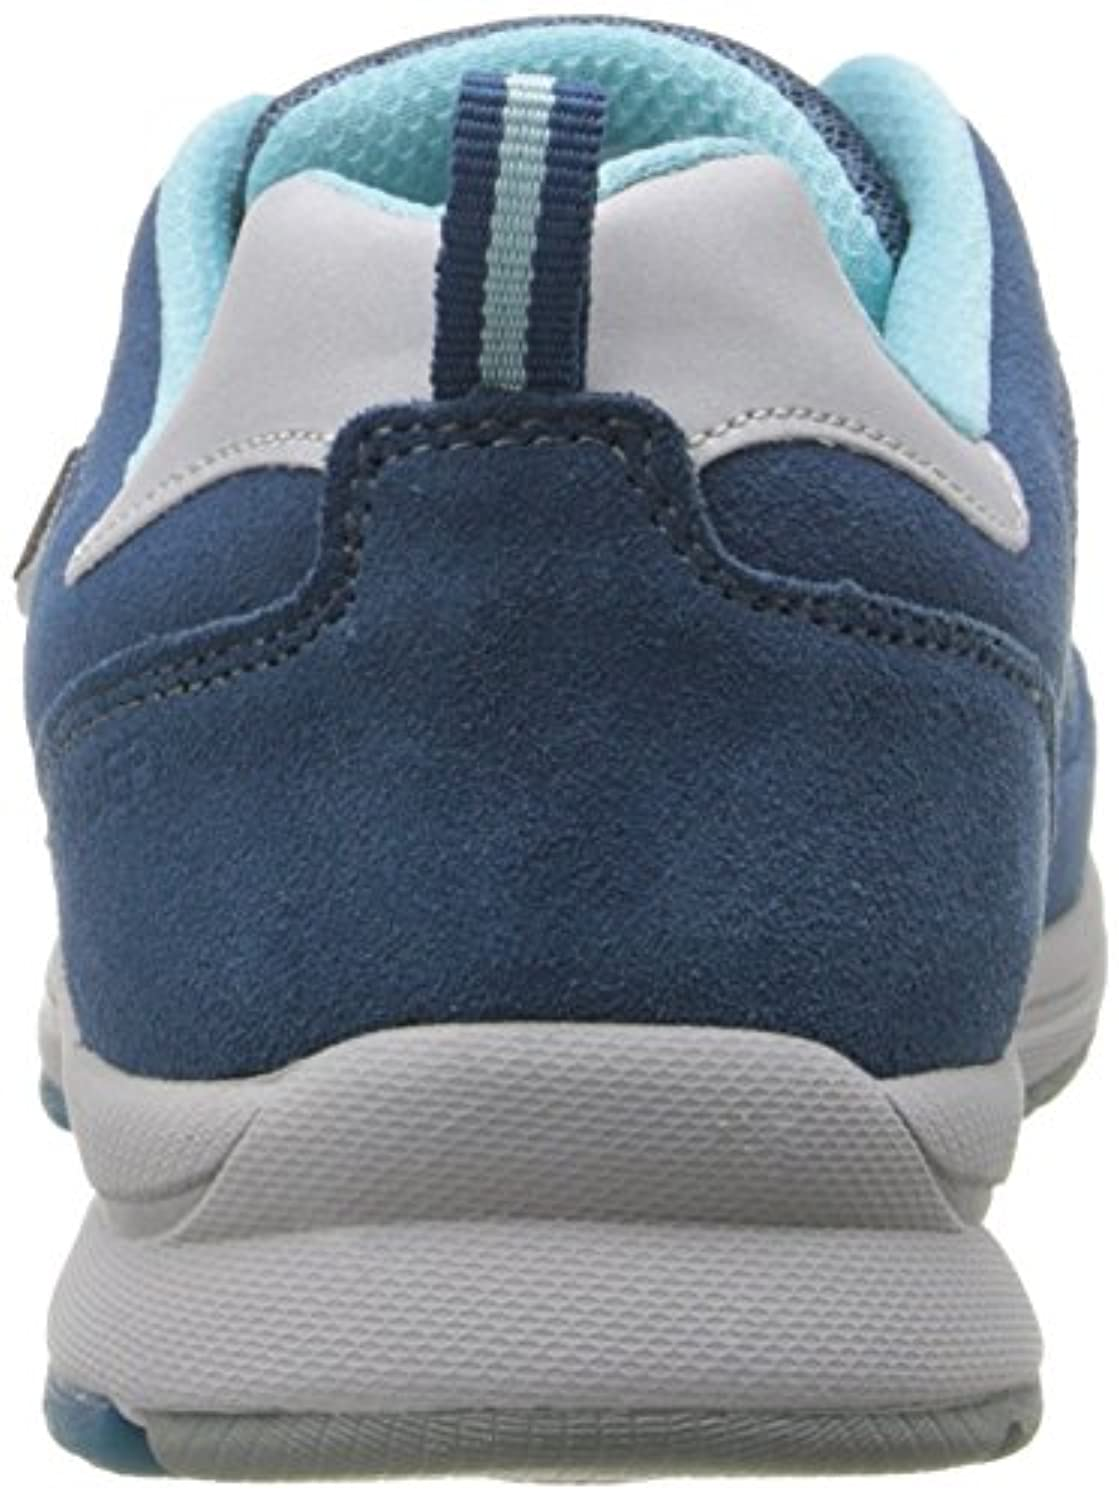 ALLROUNDER by MEPHISTO Women's Darga Oxford, Blue Suede/Mesh, 7.5 M US